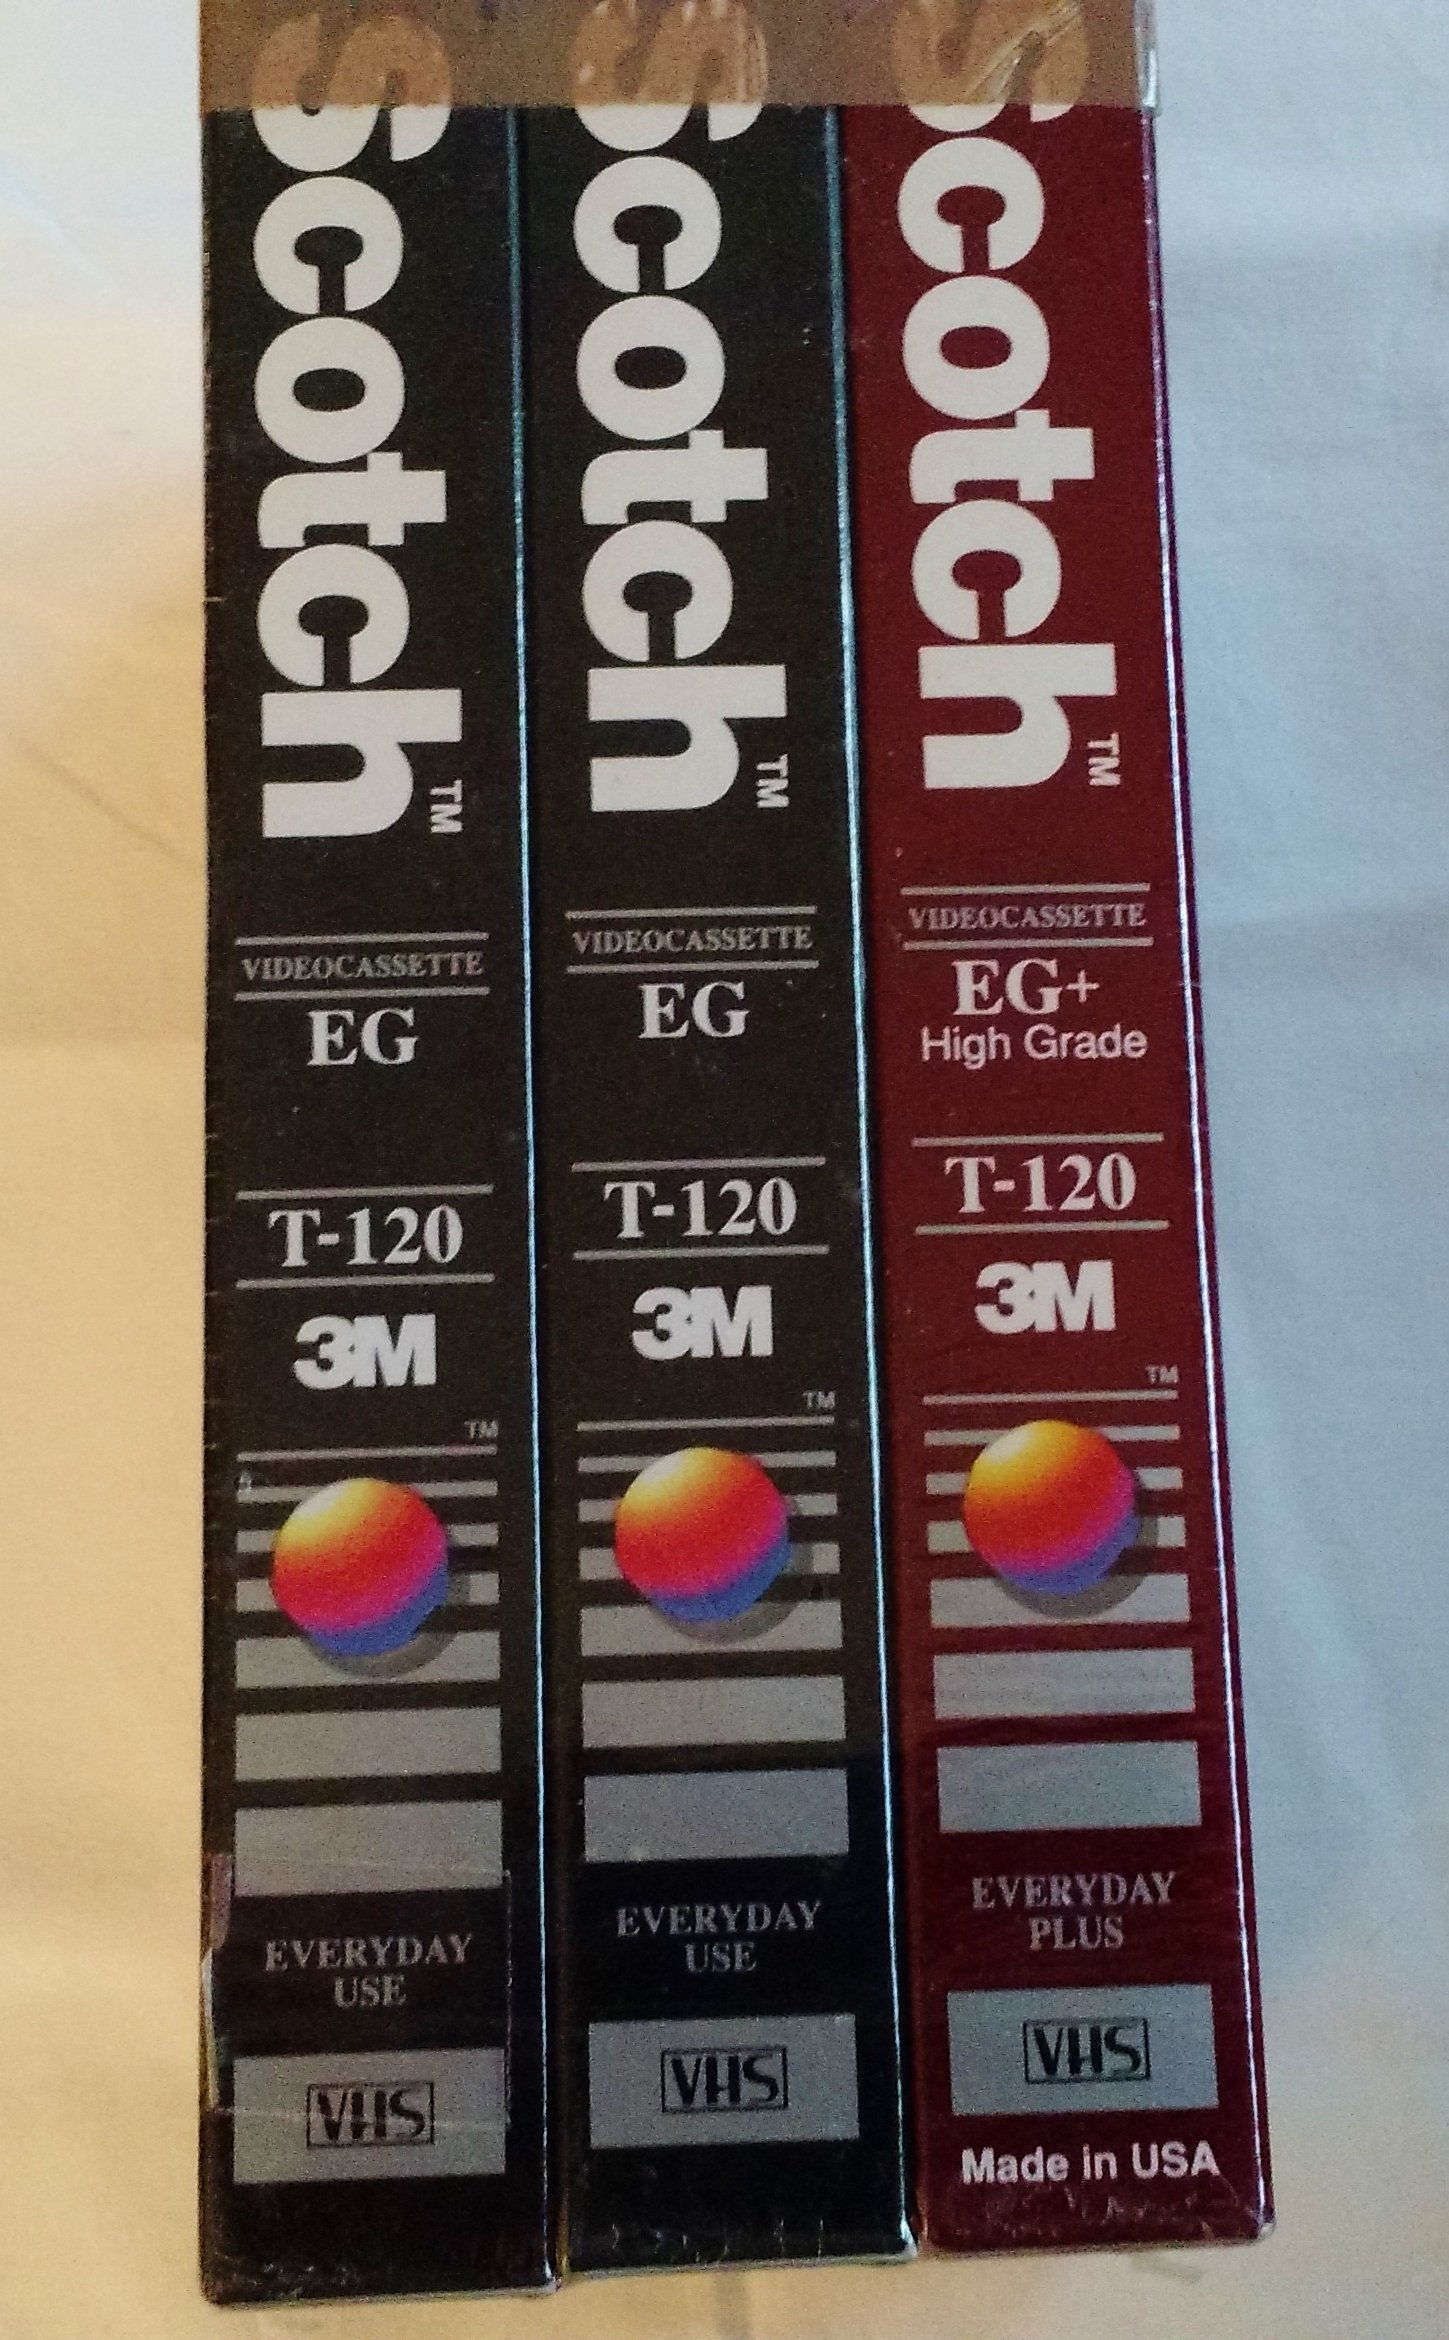 Scotch 3 VHS Value Pack with 2 High Standard and 1 Performance High Grade Videocassette T-120